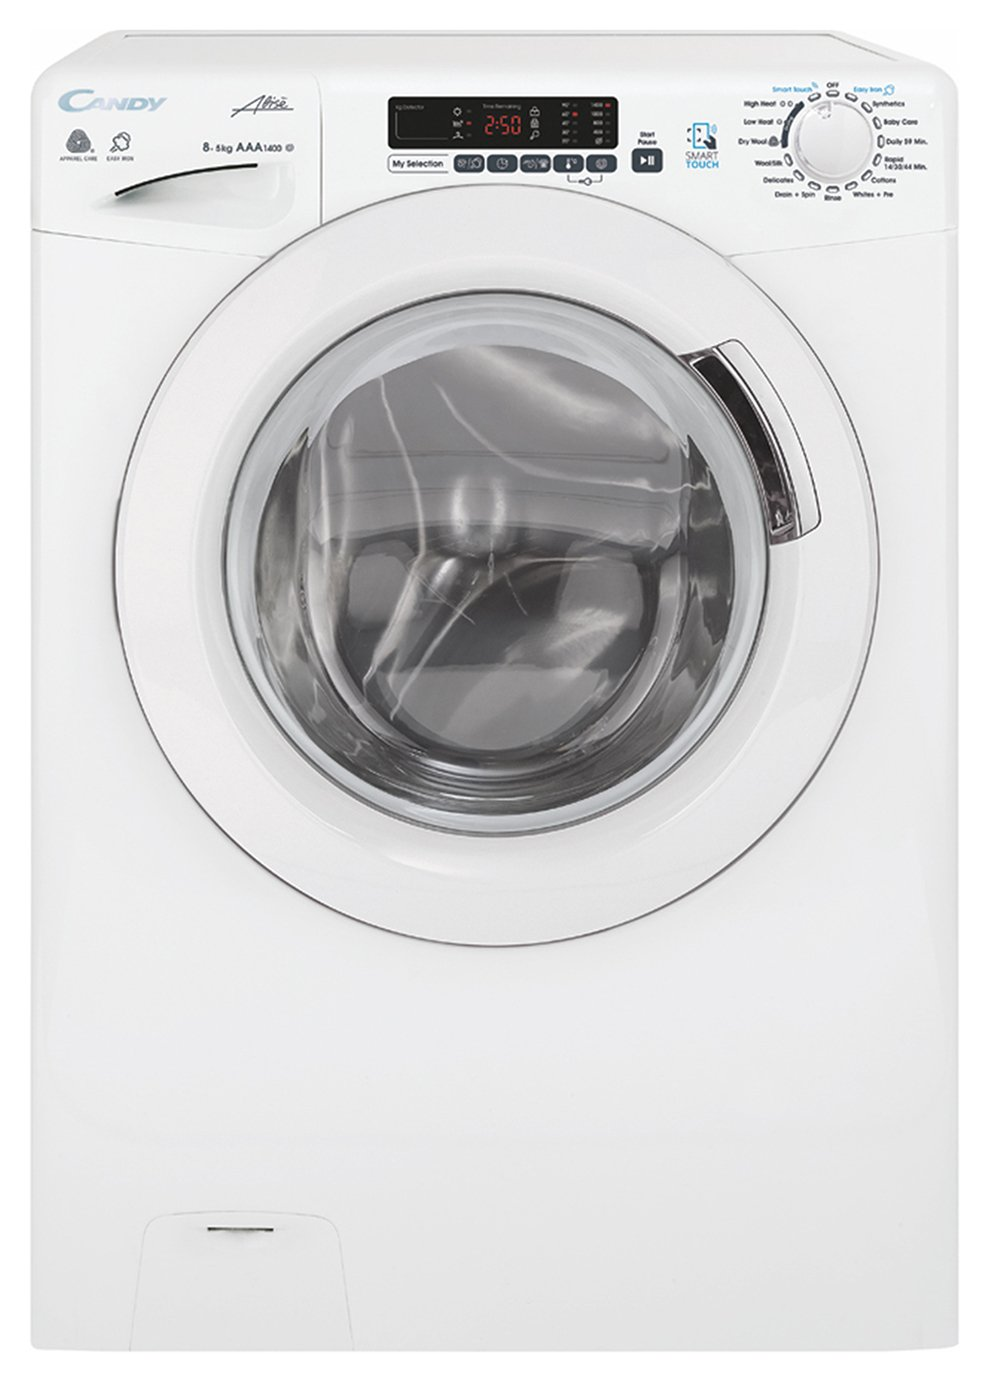 Candy GVSW485DC 8 / 5KG 1400 Spin Washer Dryer - White from Candy